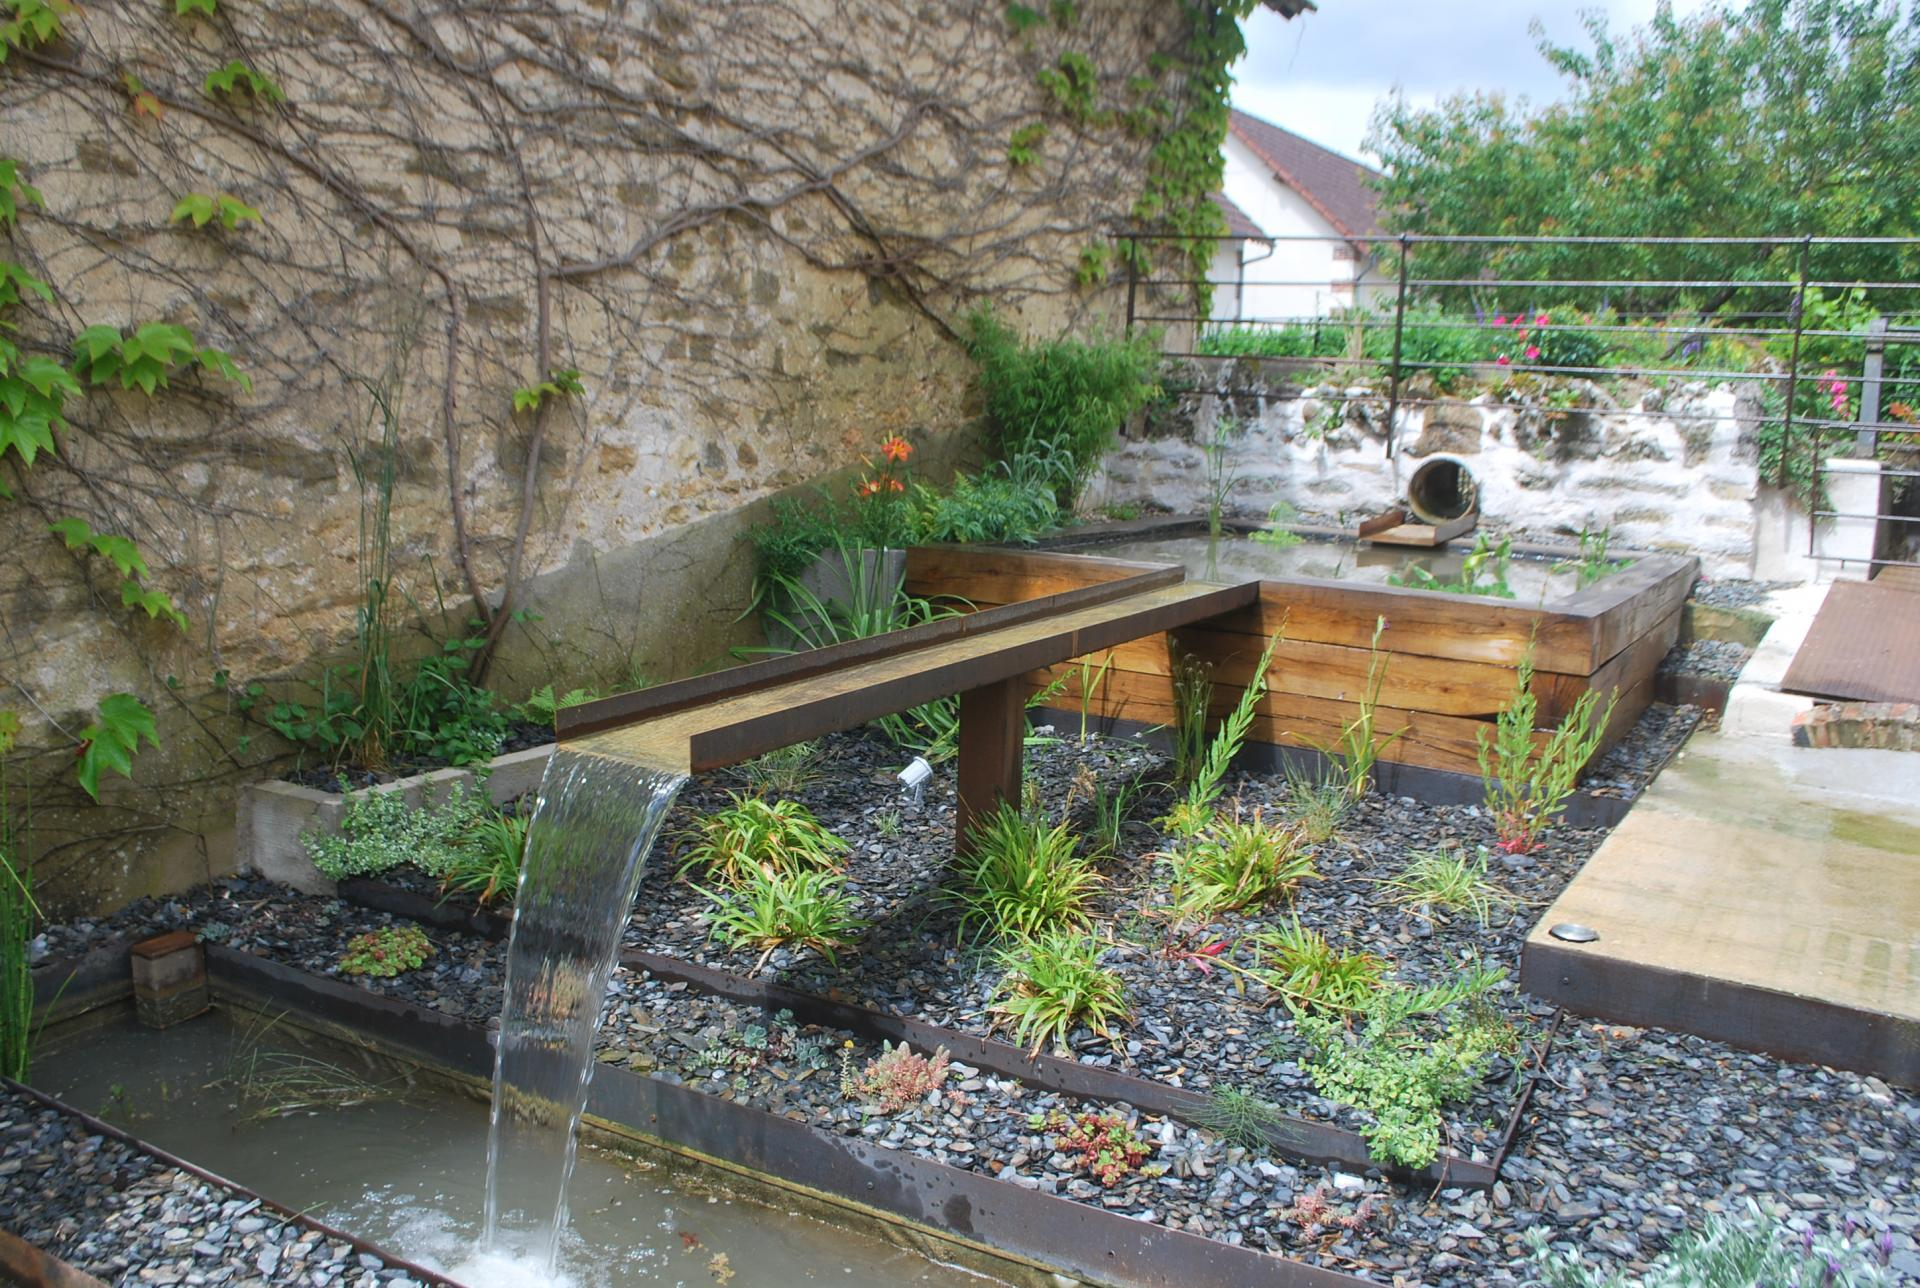 paysagiste auxerre cr ation de jardin bassin terrasse On idee creation jardin